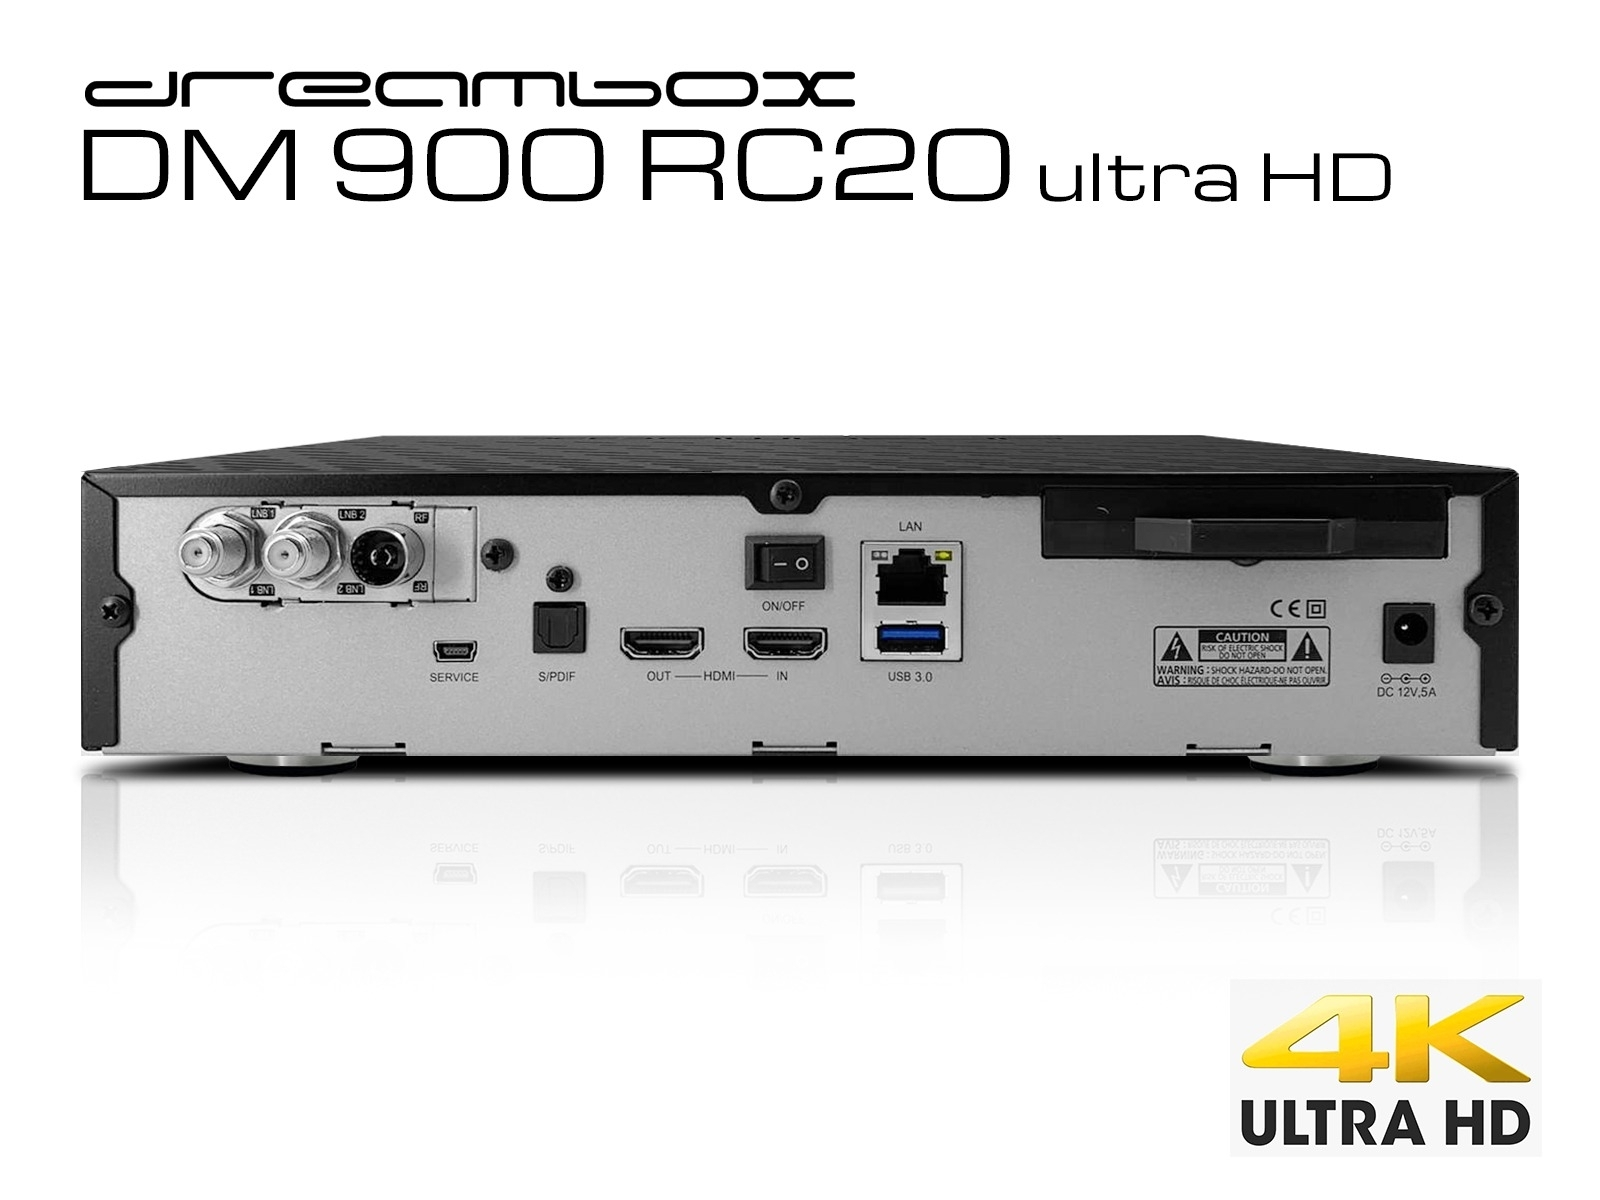 Dreambox DM900 RC20 UHD 4K 2x DVB-S2X / 1x DVB-C/T2 Triple MS Tuner E2 Linux PVR ready Receiver